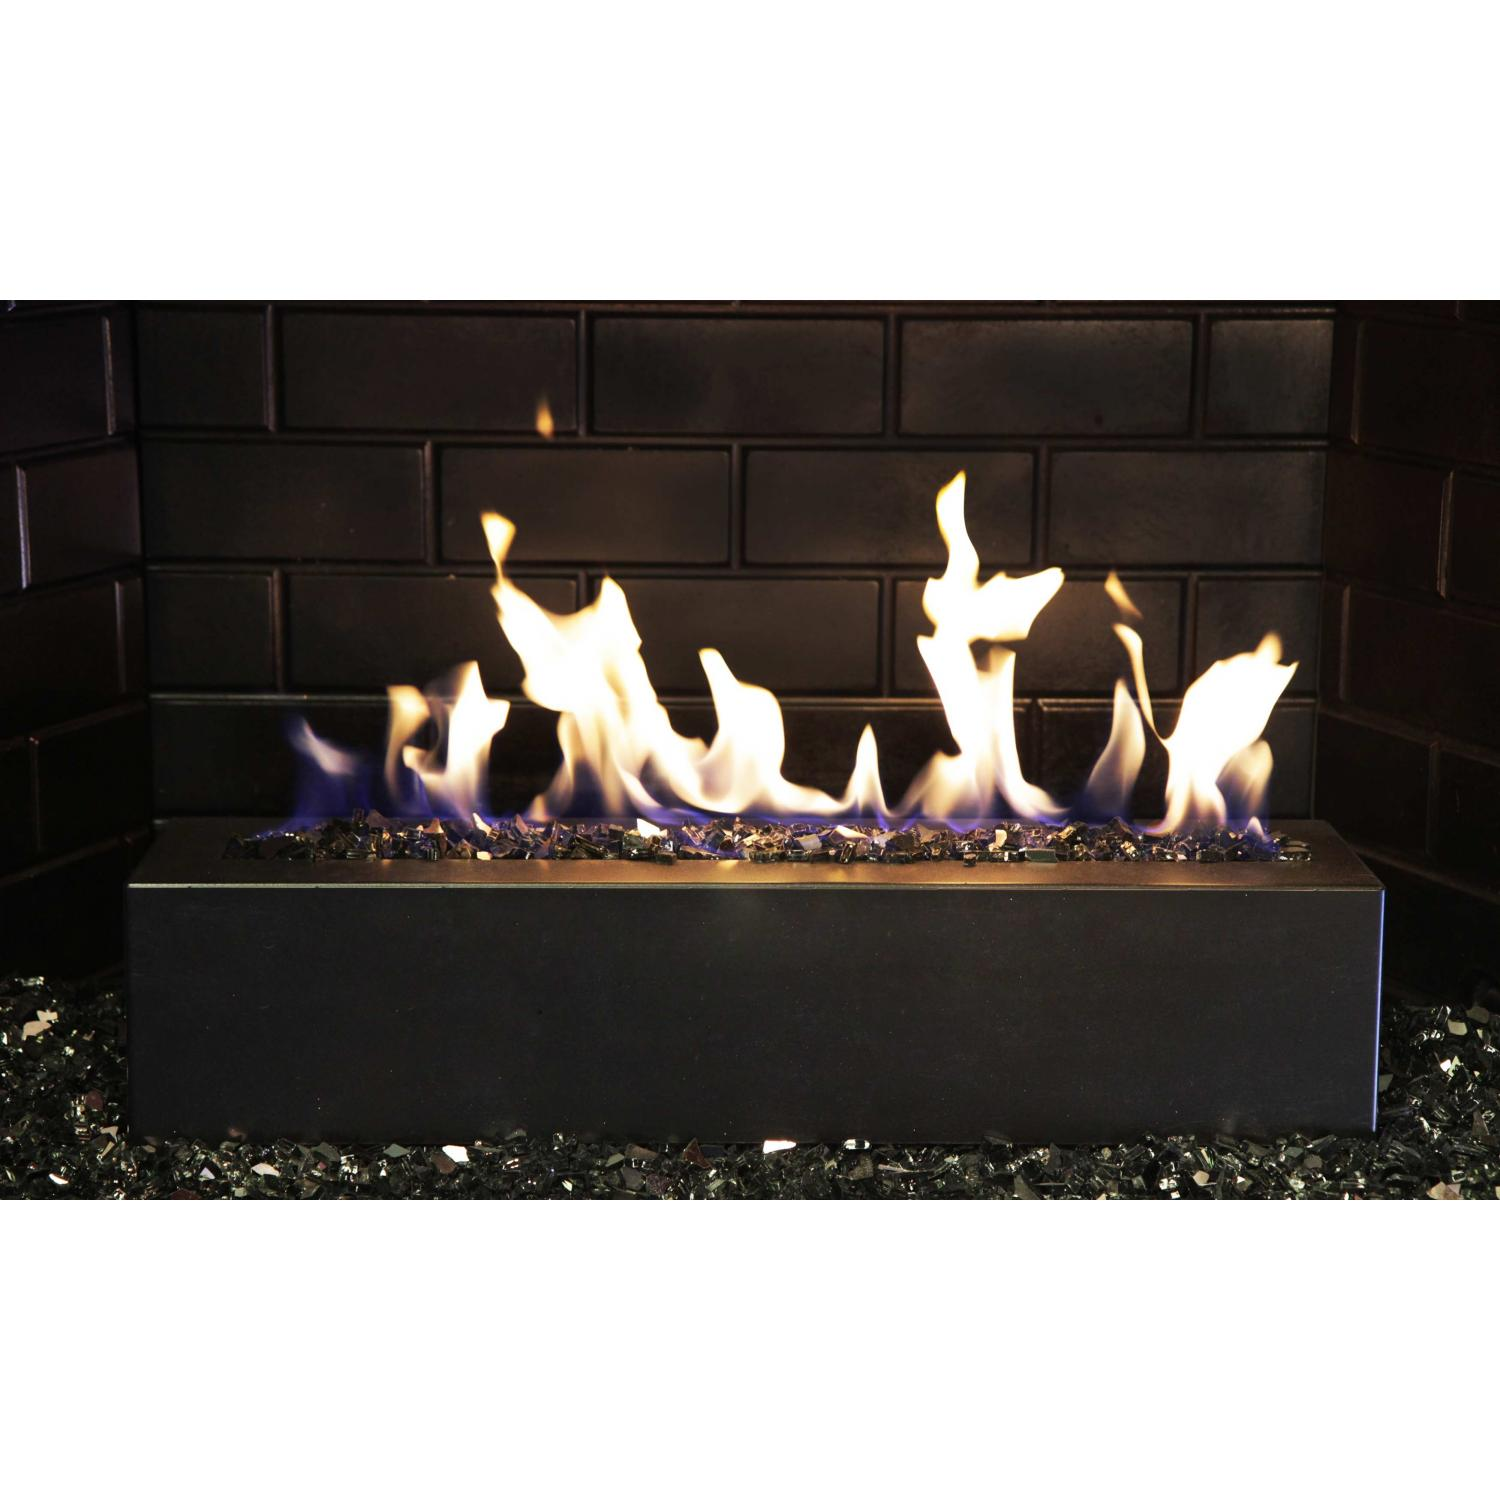 Picture of Golden Blount 24-Inch Alpine Linear Burner With Decorative Black Front Face And Black Reflective Fire Glass